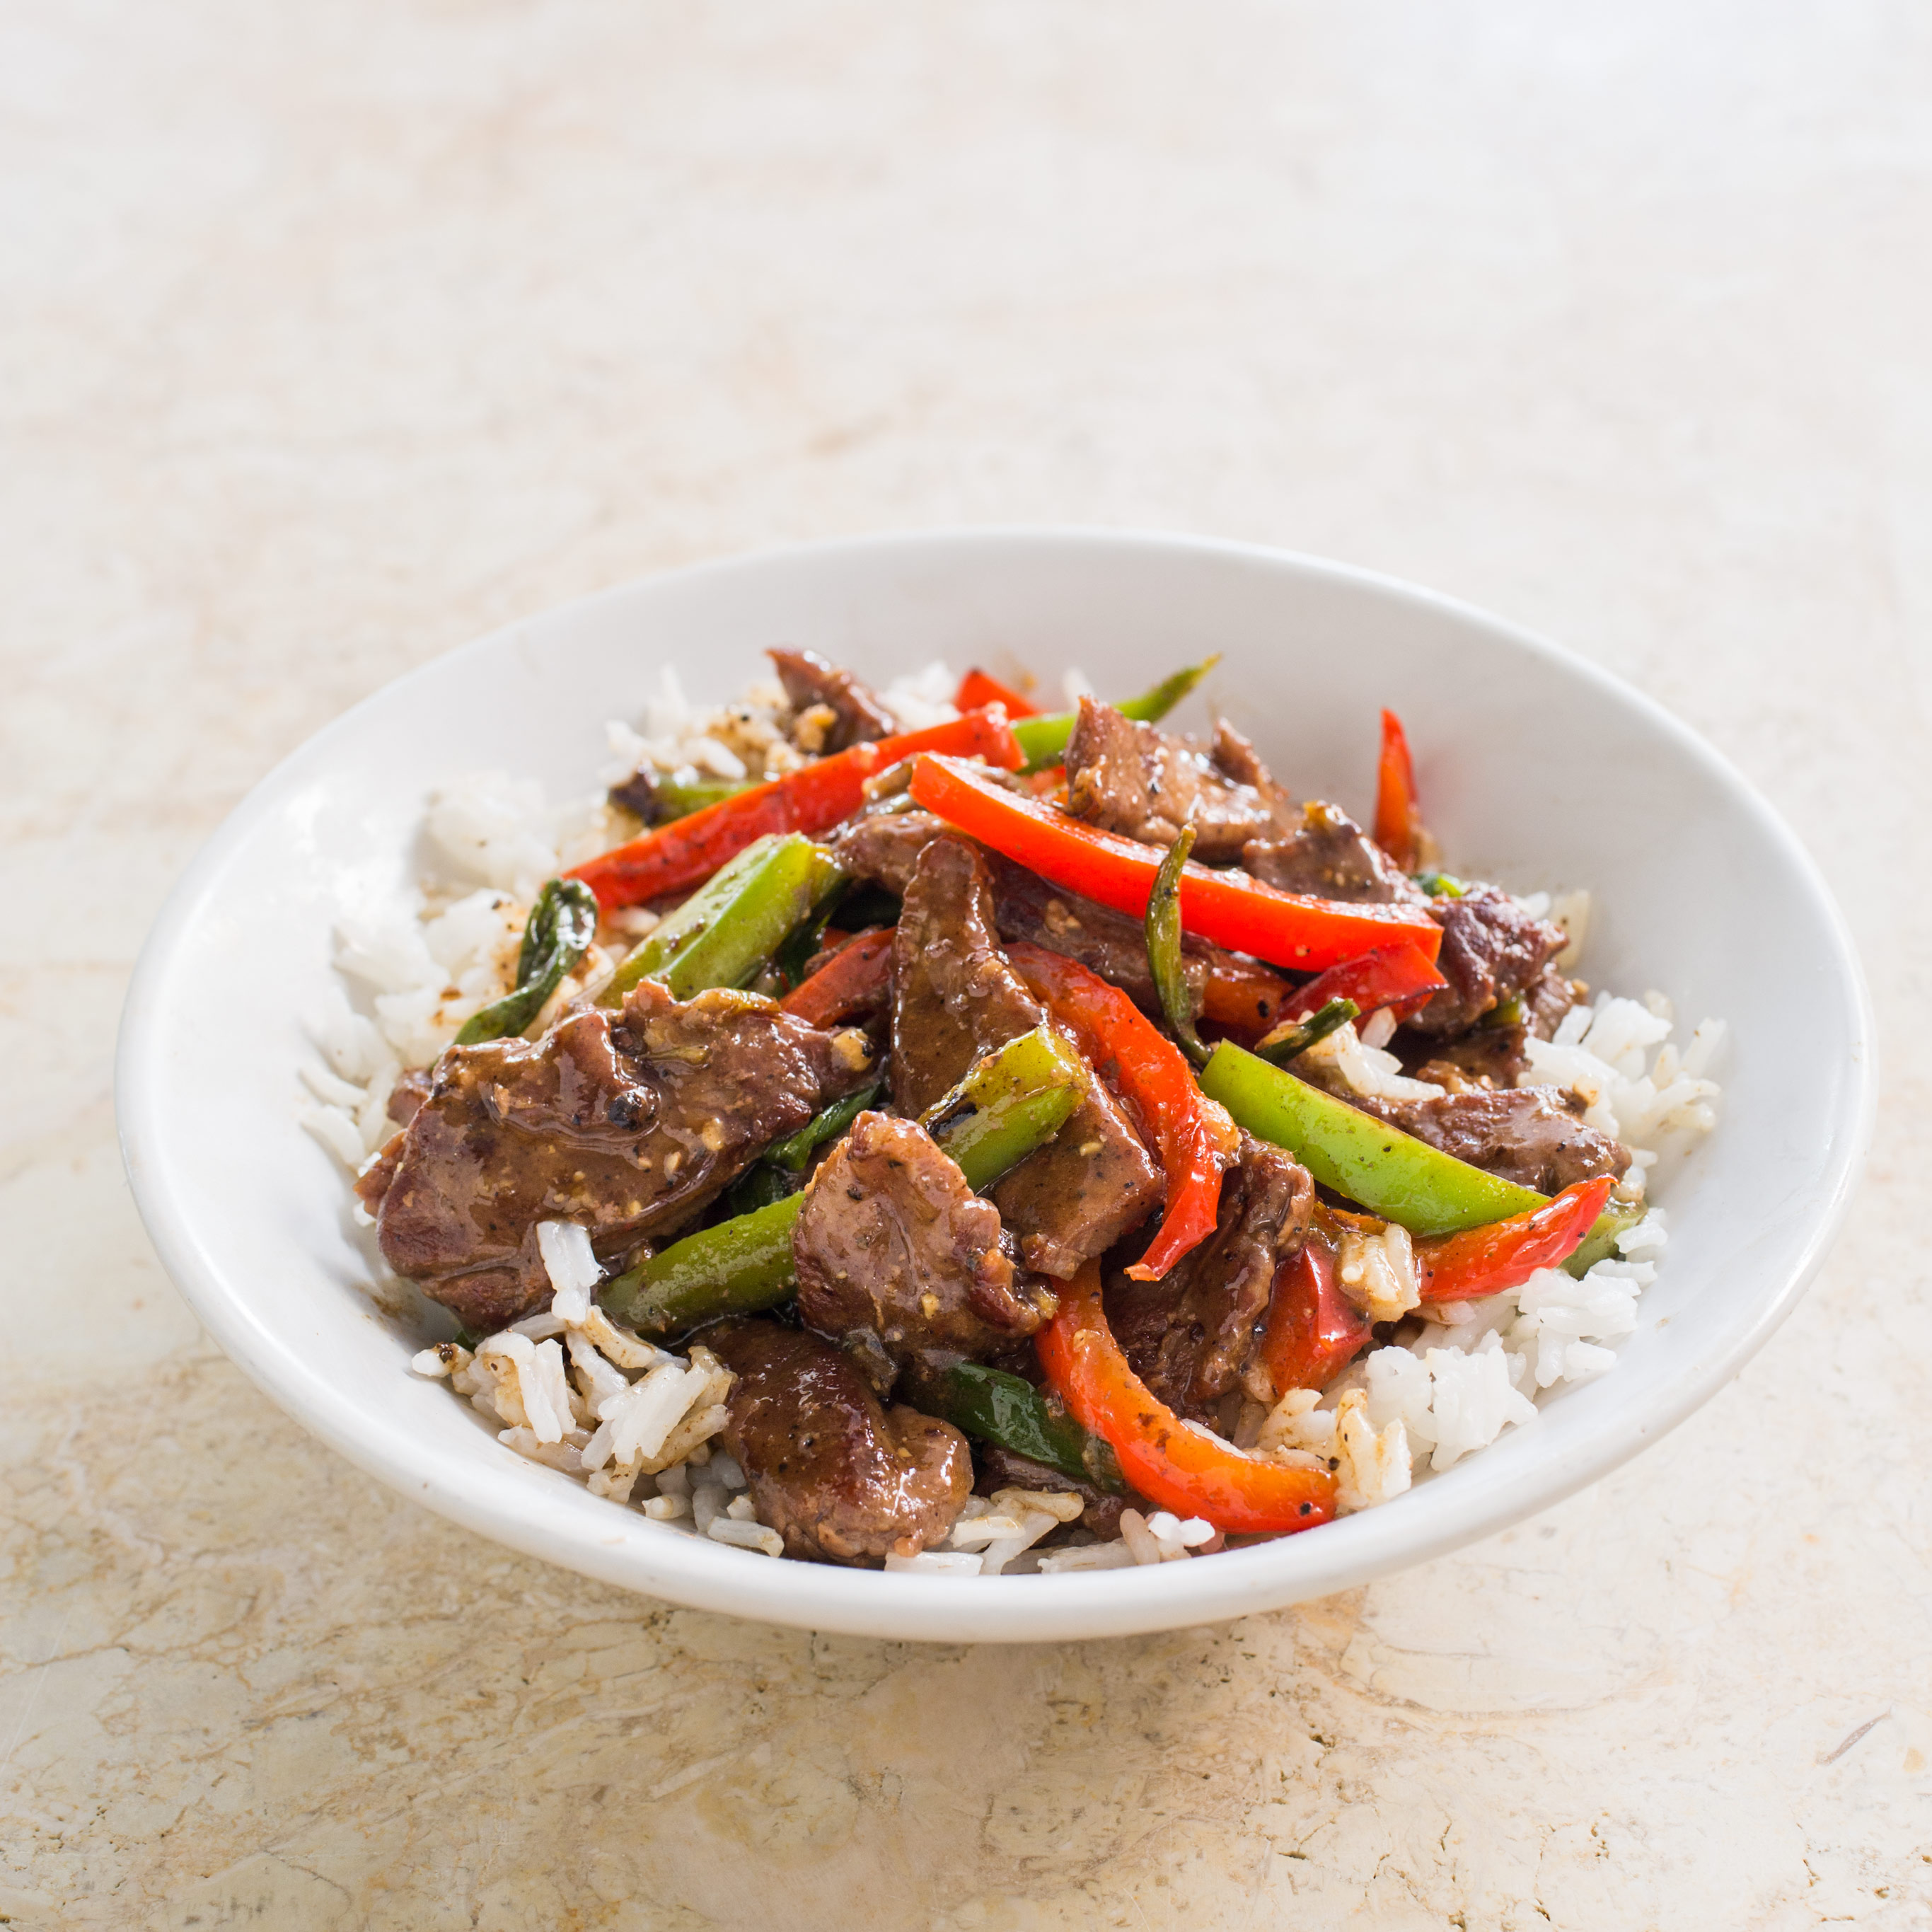 Watch Beef and Pepper Stir-Fry video